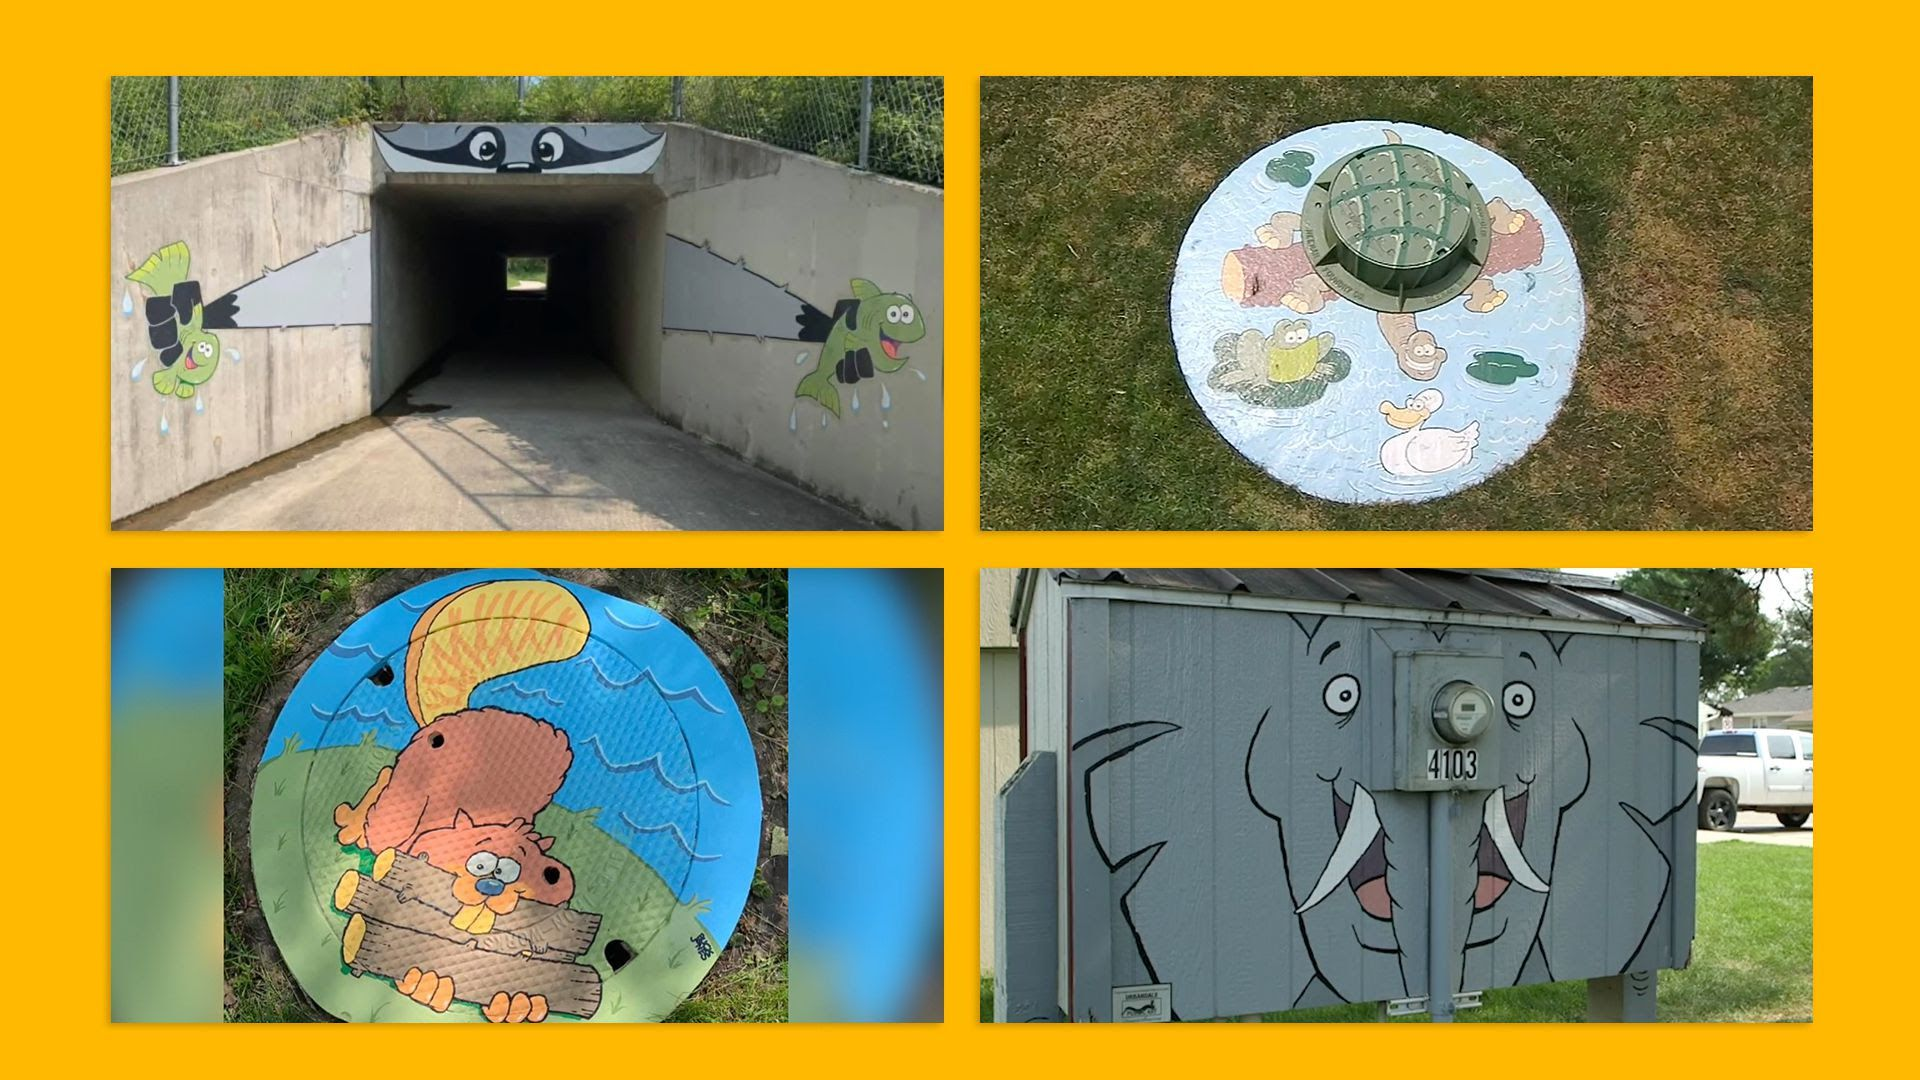 Four photos of art on drain lids, an electric meter and a tunnel in Urbandale, Iowa.